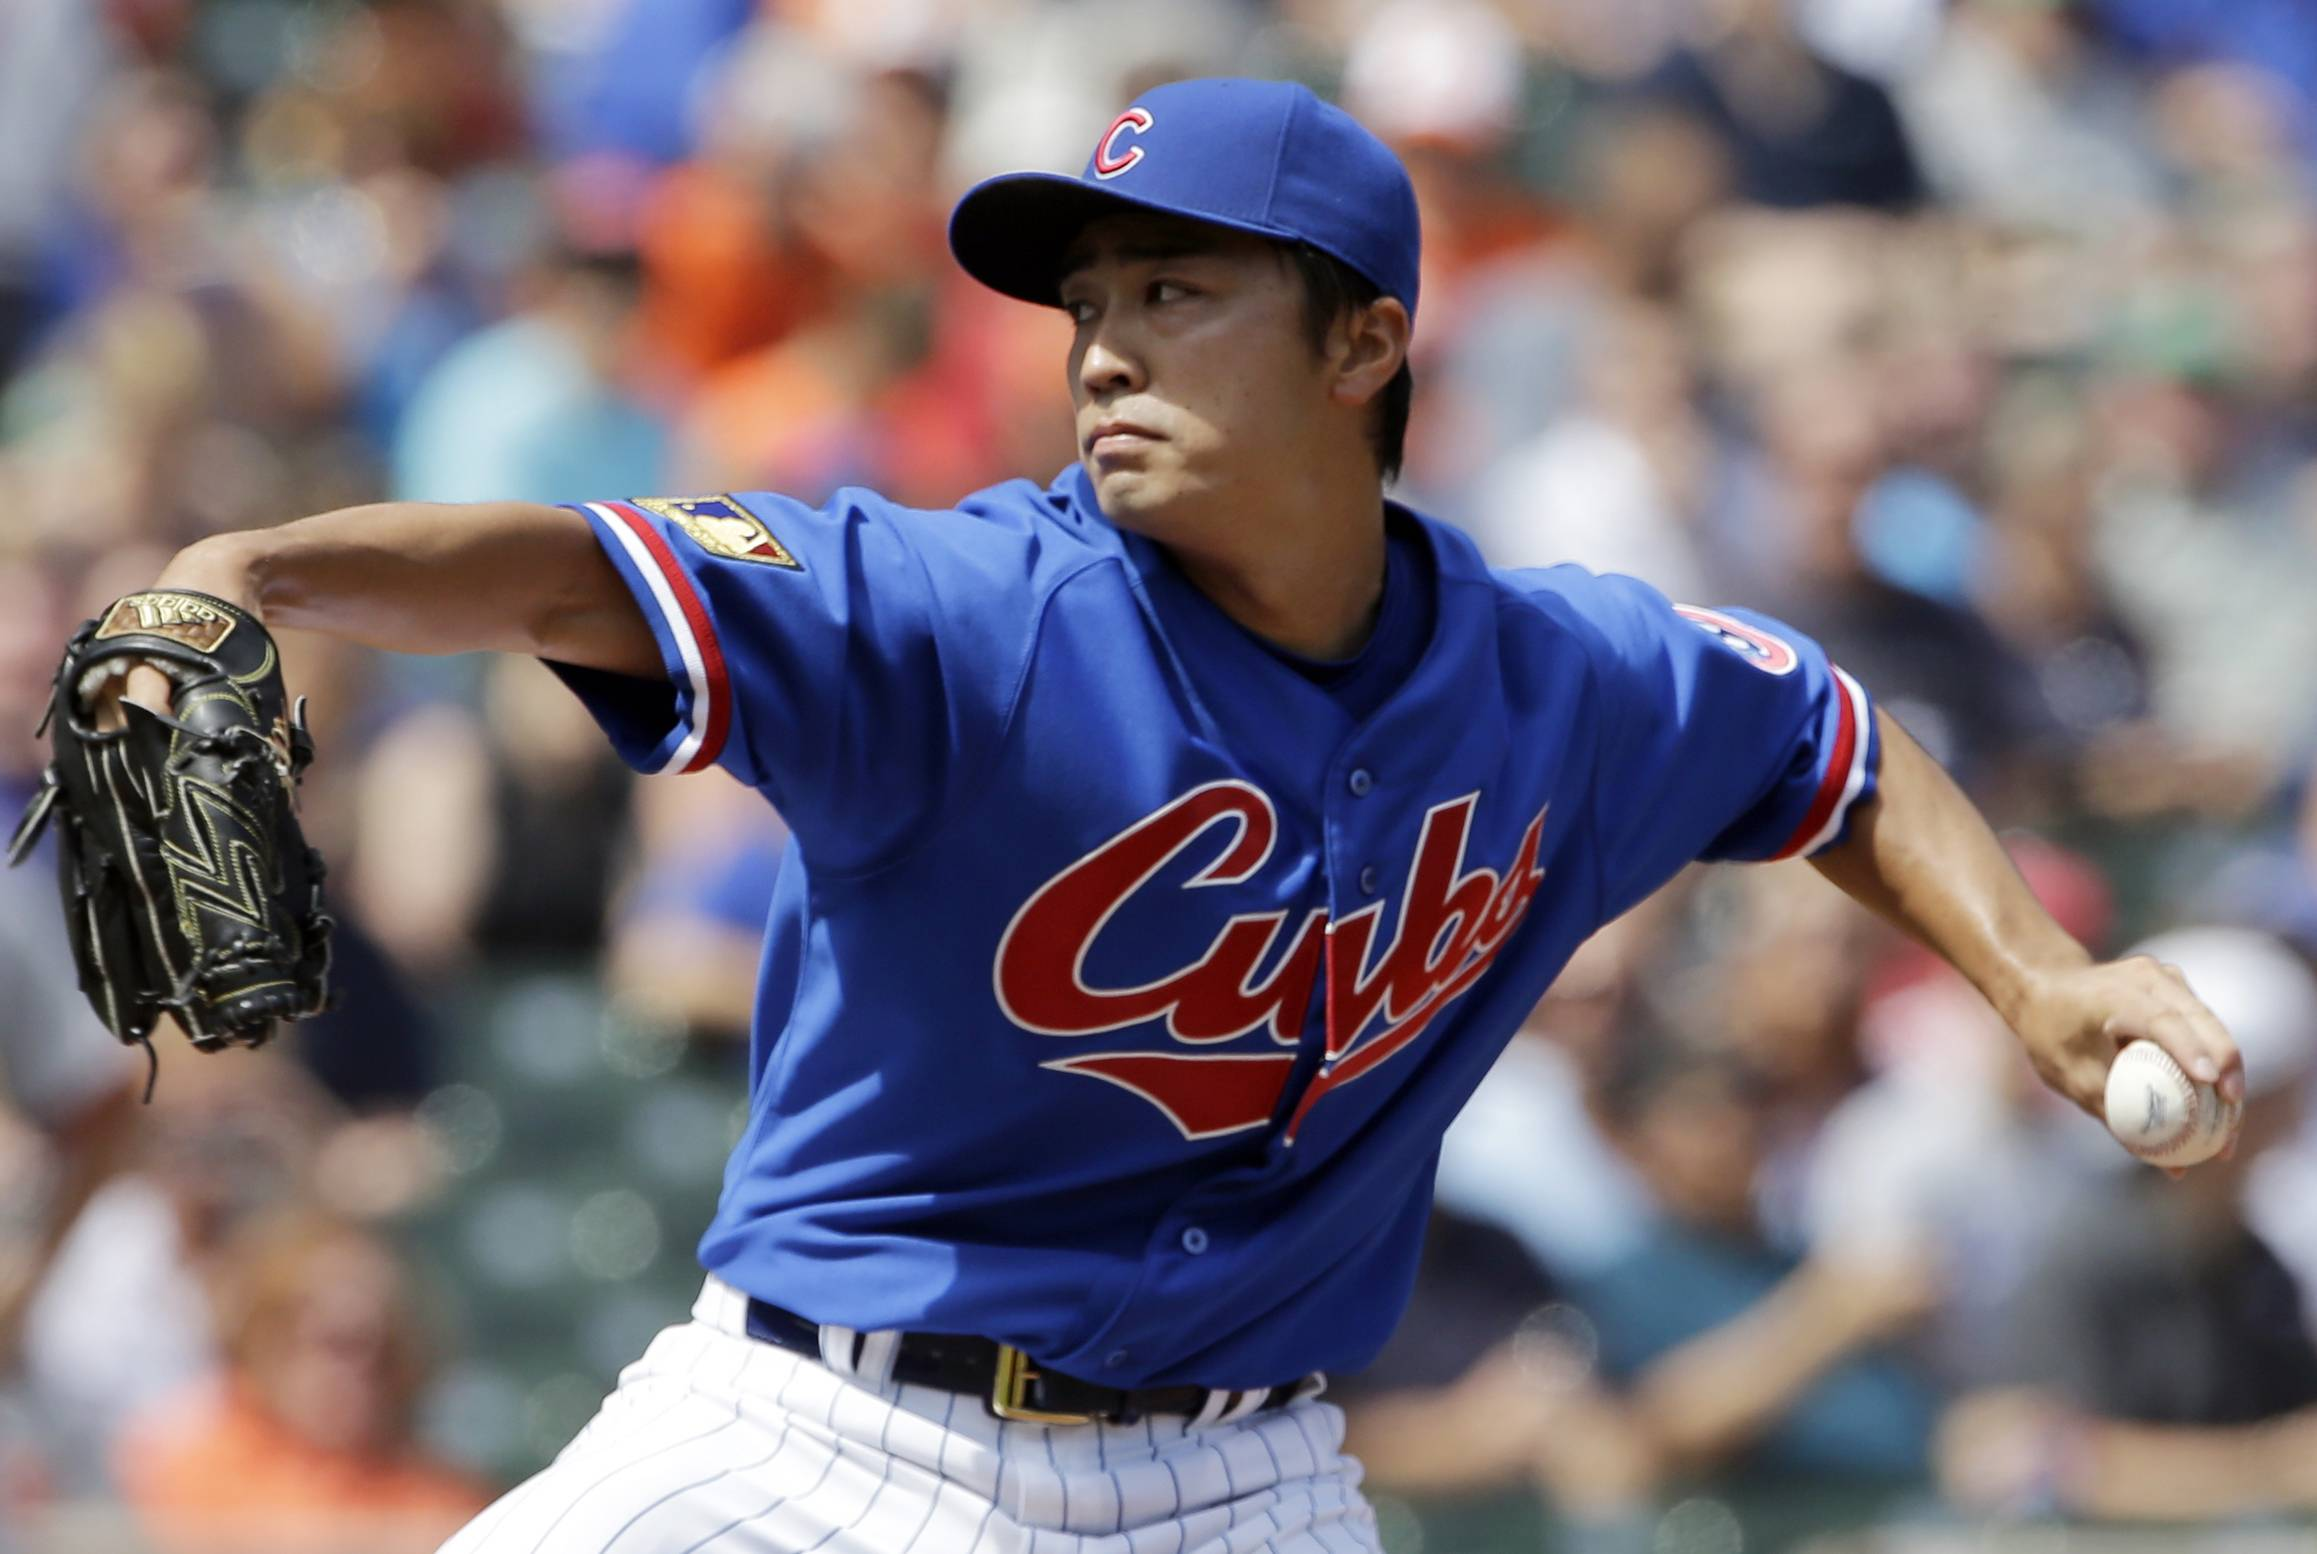 Chicago Cubs starter Tsuyoshi Wada, of Japan, throws against the Baltimore Orioles during the first inning -- the first of more than 6 without giving up a hit.